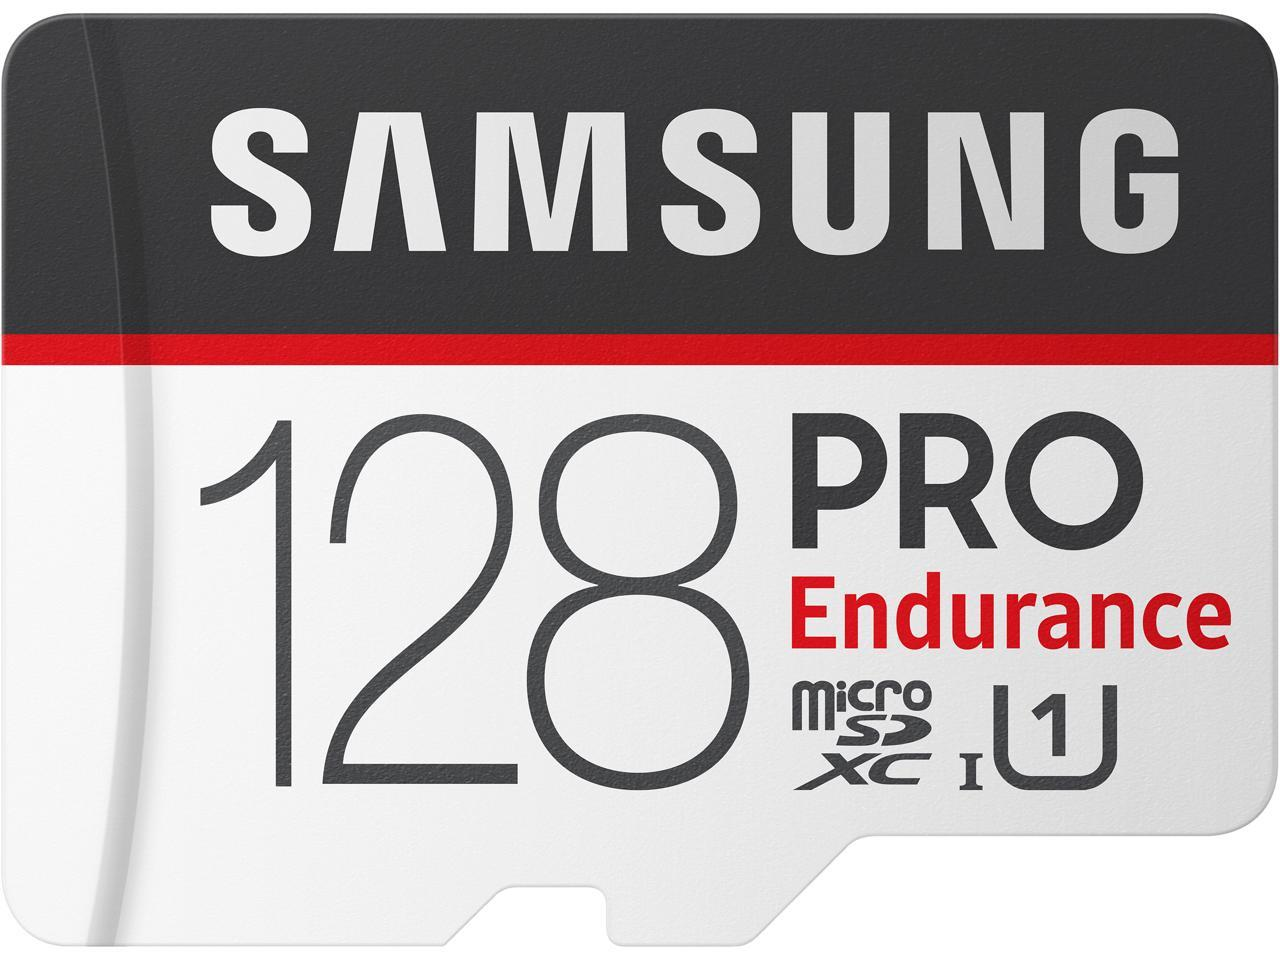 Samsung 128GB Pro Endurance microSDXC Memory Card with Adapter MB-MJ128GA/AM